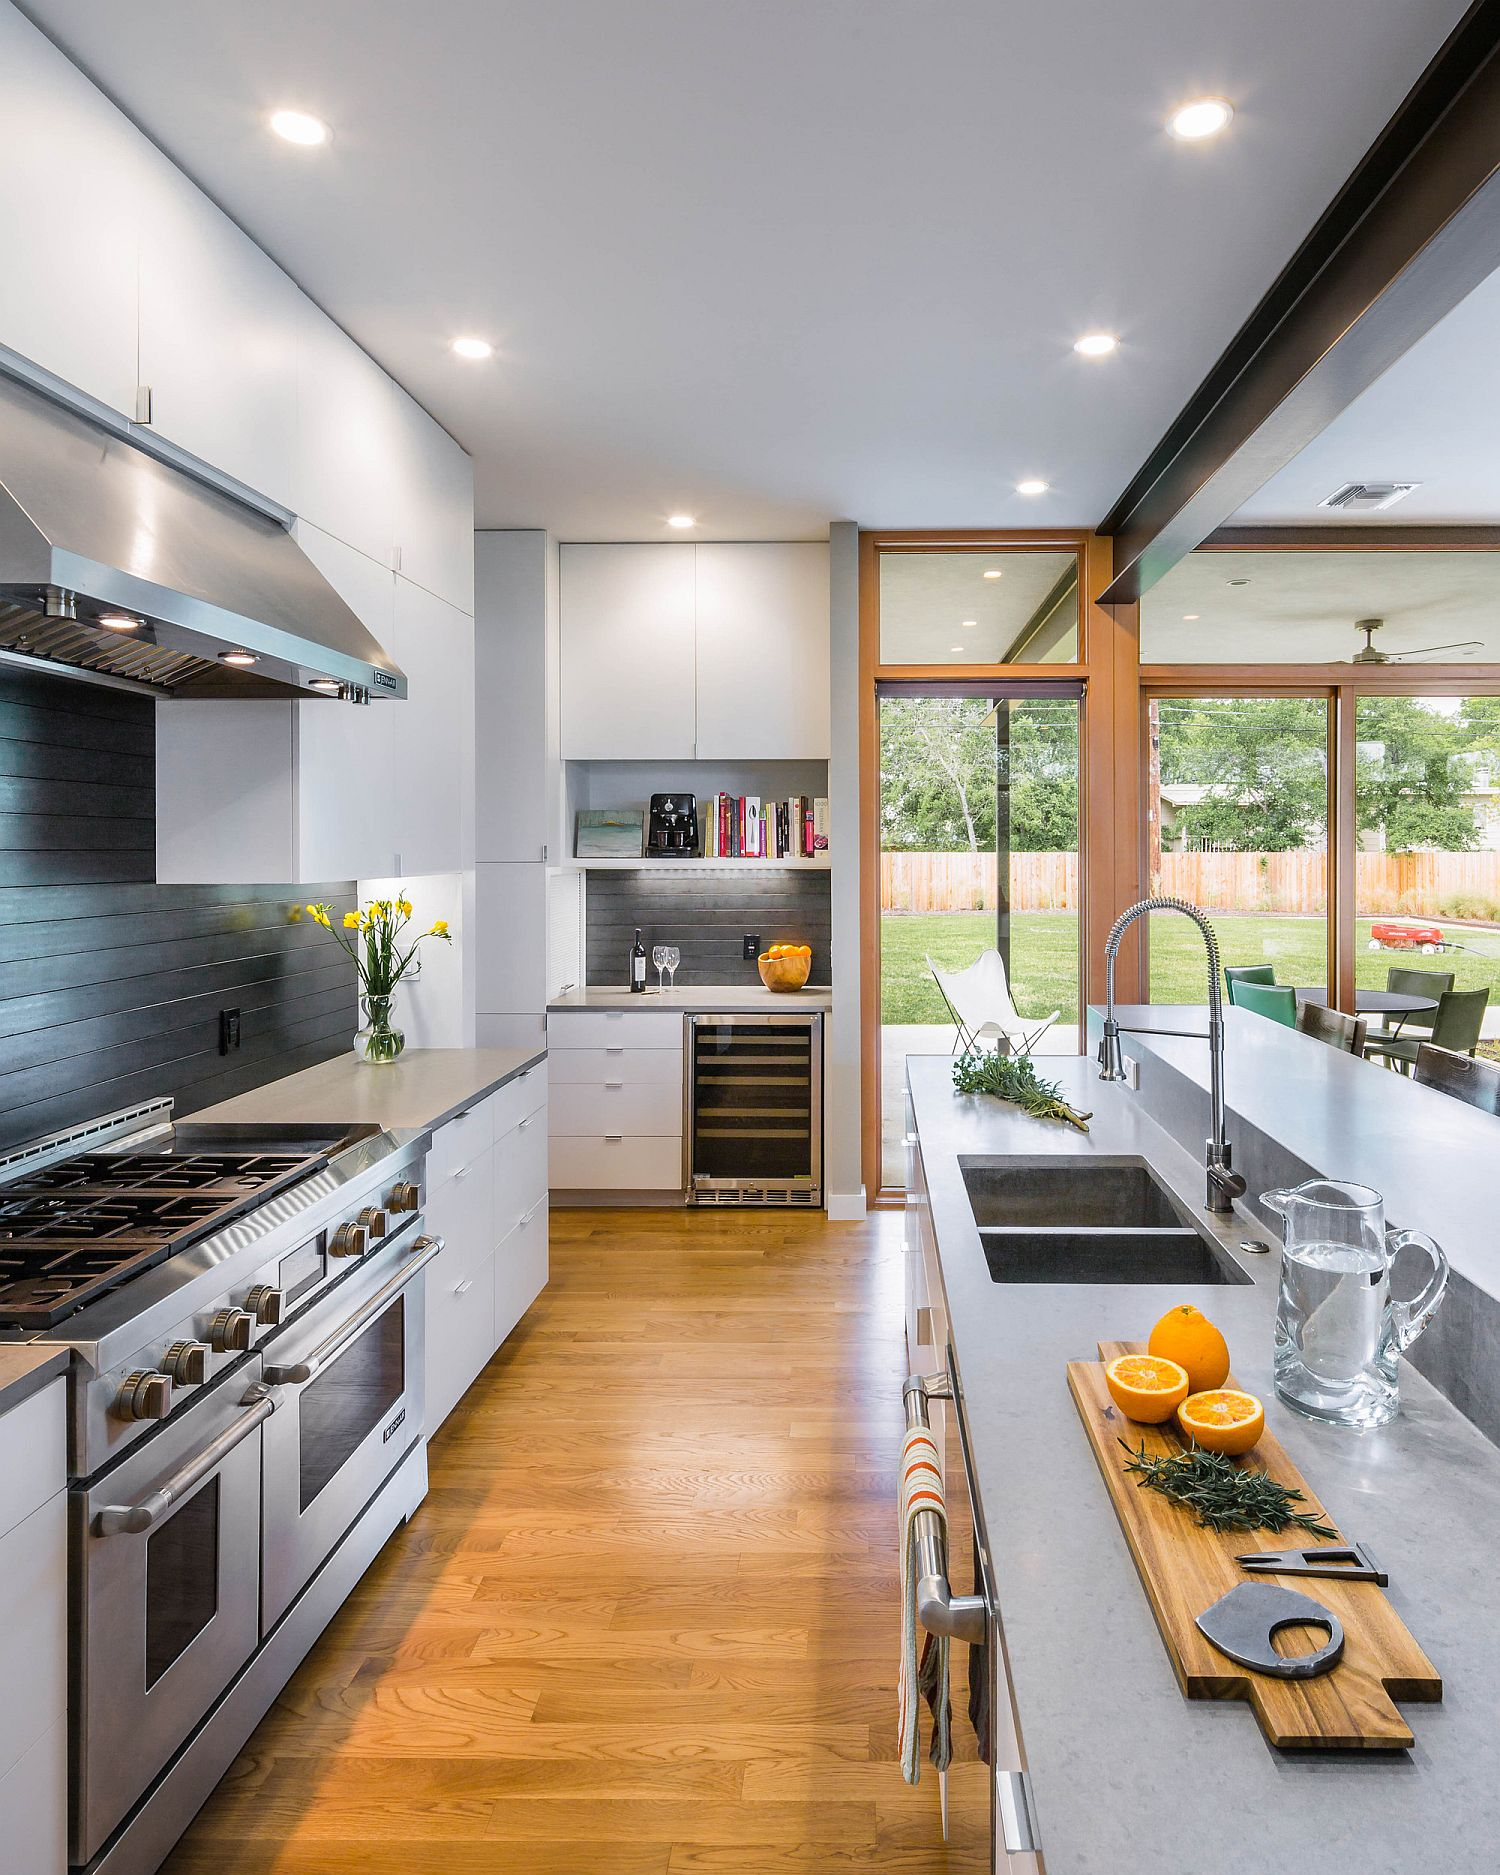 Contemporary kitchen with multiple islands and flooring in wood